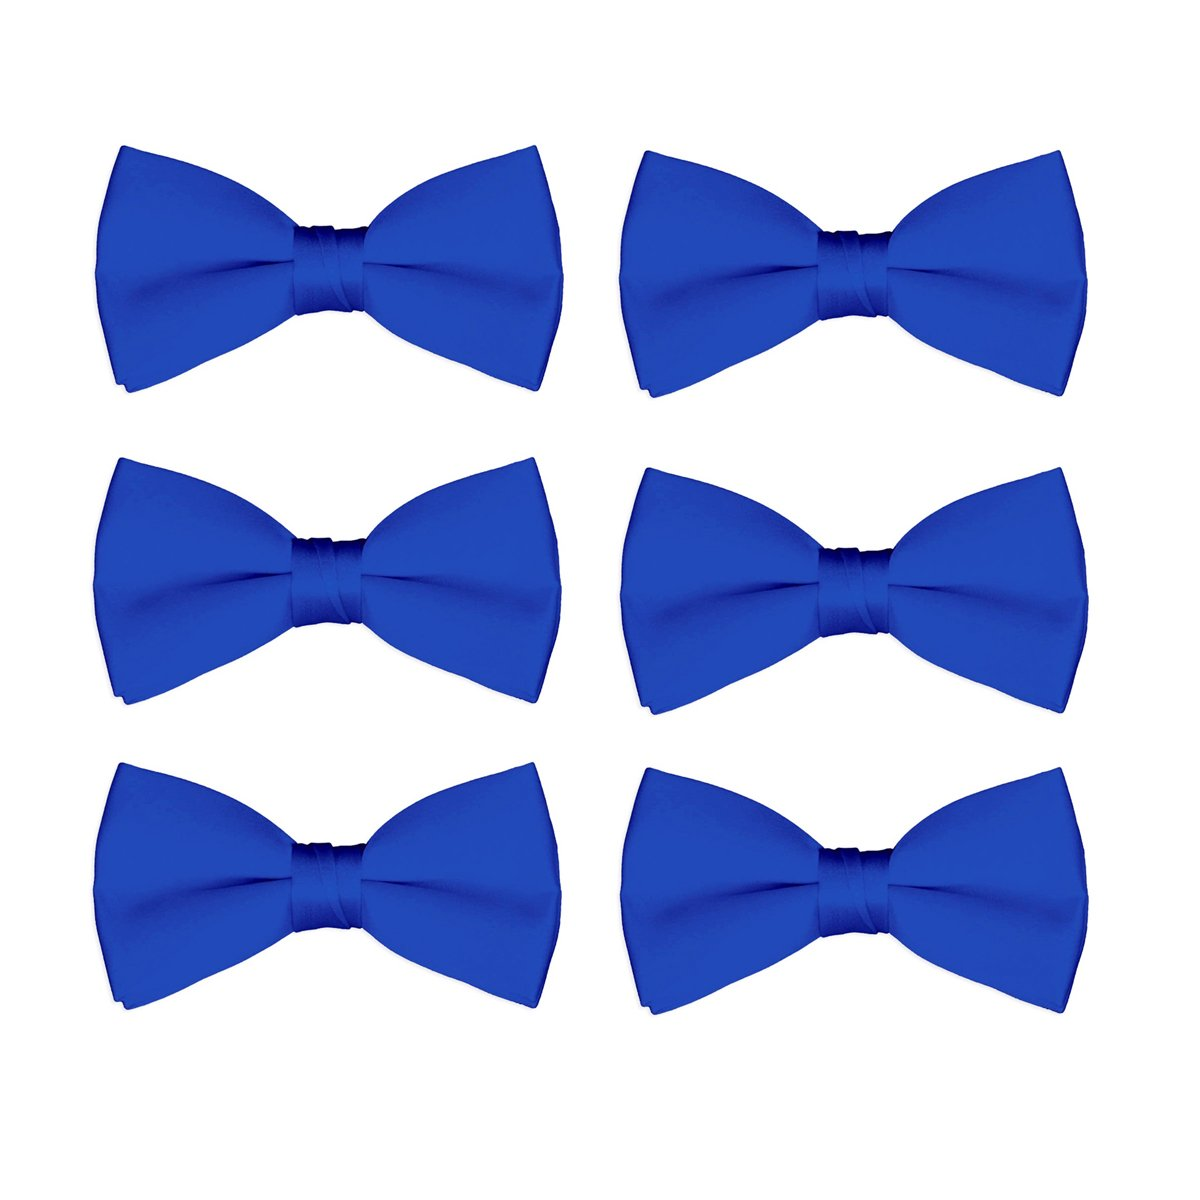 Boys Bow Tie Wholesale 6 Pack Children Pre-Tied Formal Tuxedo Bowties Kids Solid Ties (Royal)